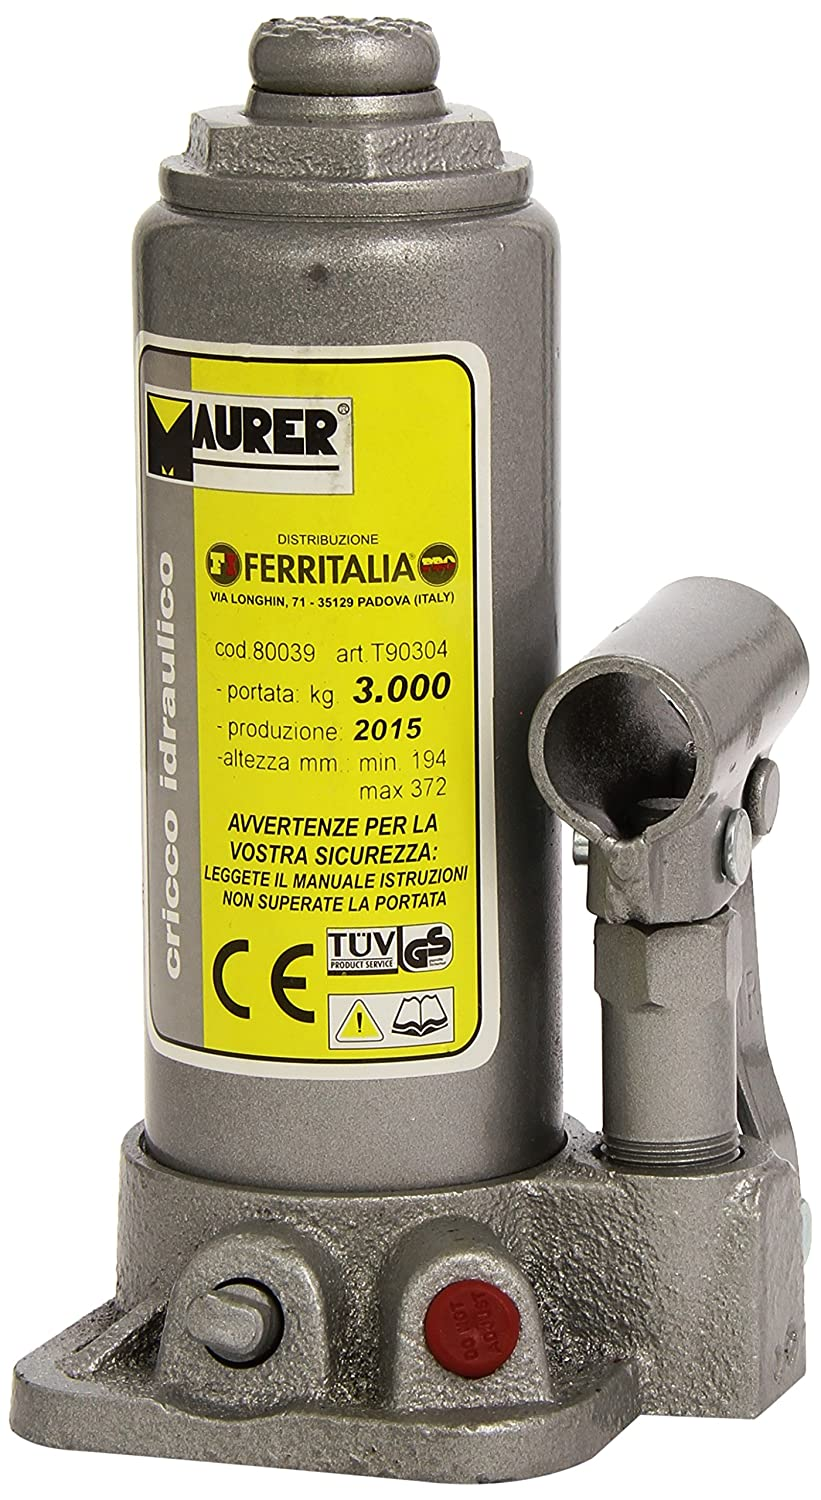 MAURER 2325505 Gato Hidraulico Botella 3000 Kg. A Forged Tool S.A.